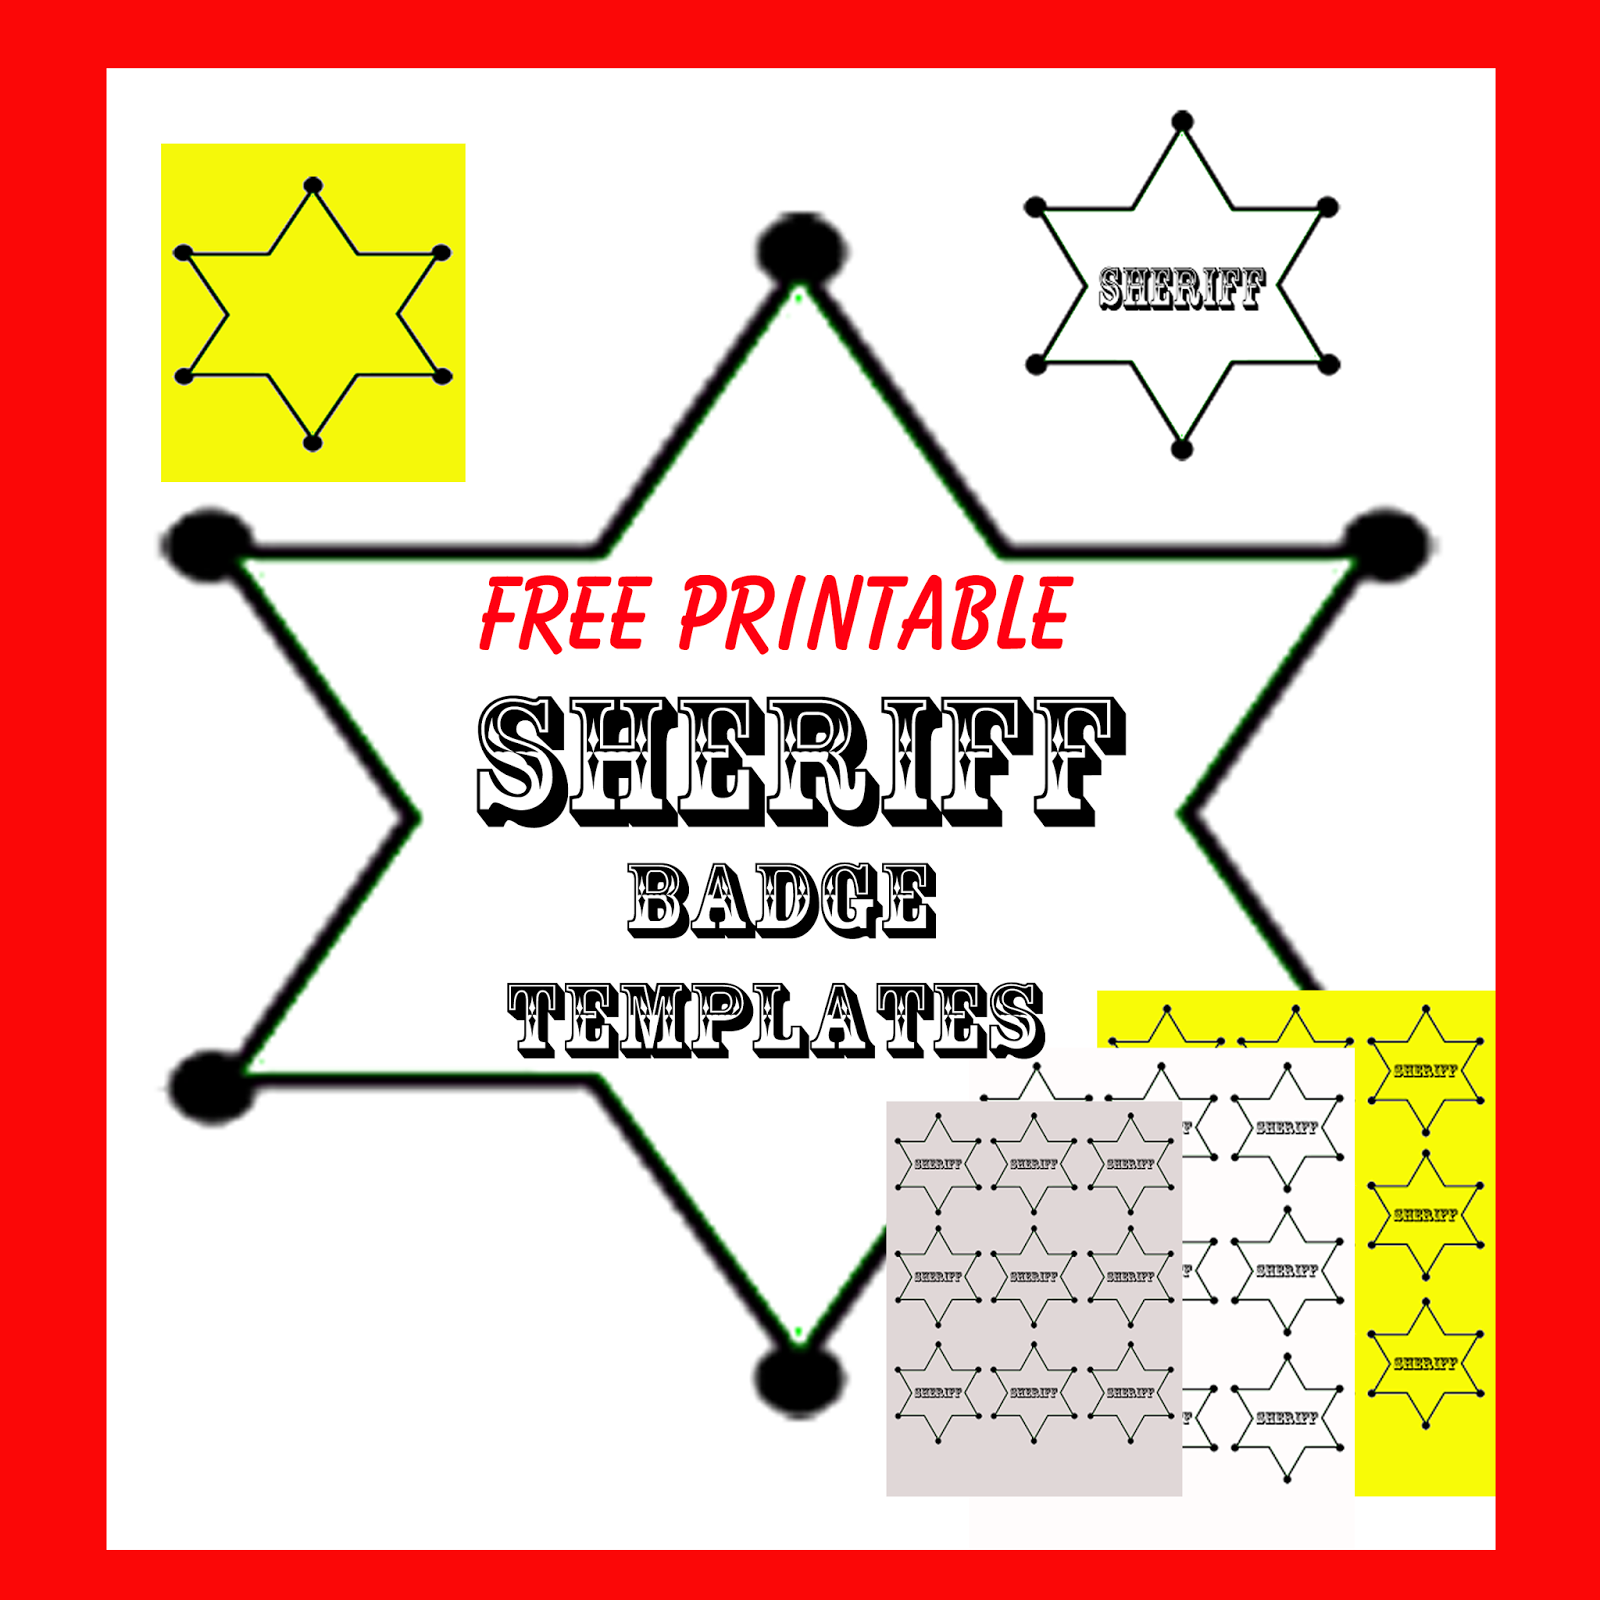 Crafts And Creations By Dancing Cowgirl Design: Free Printable